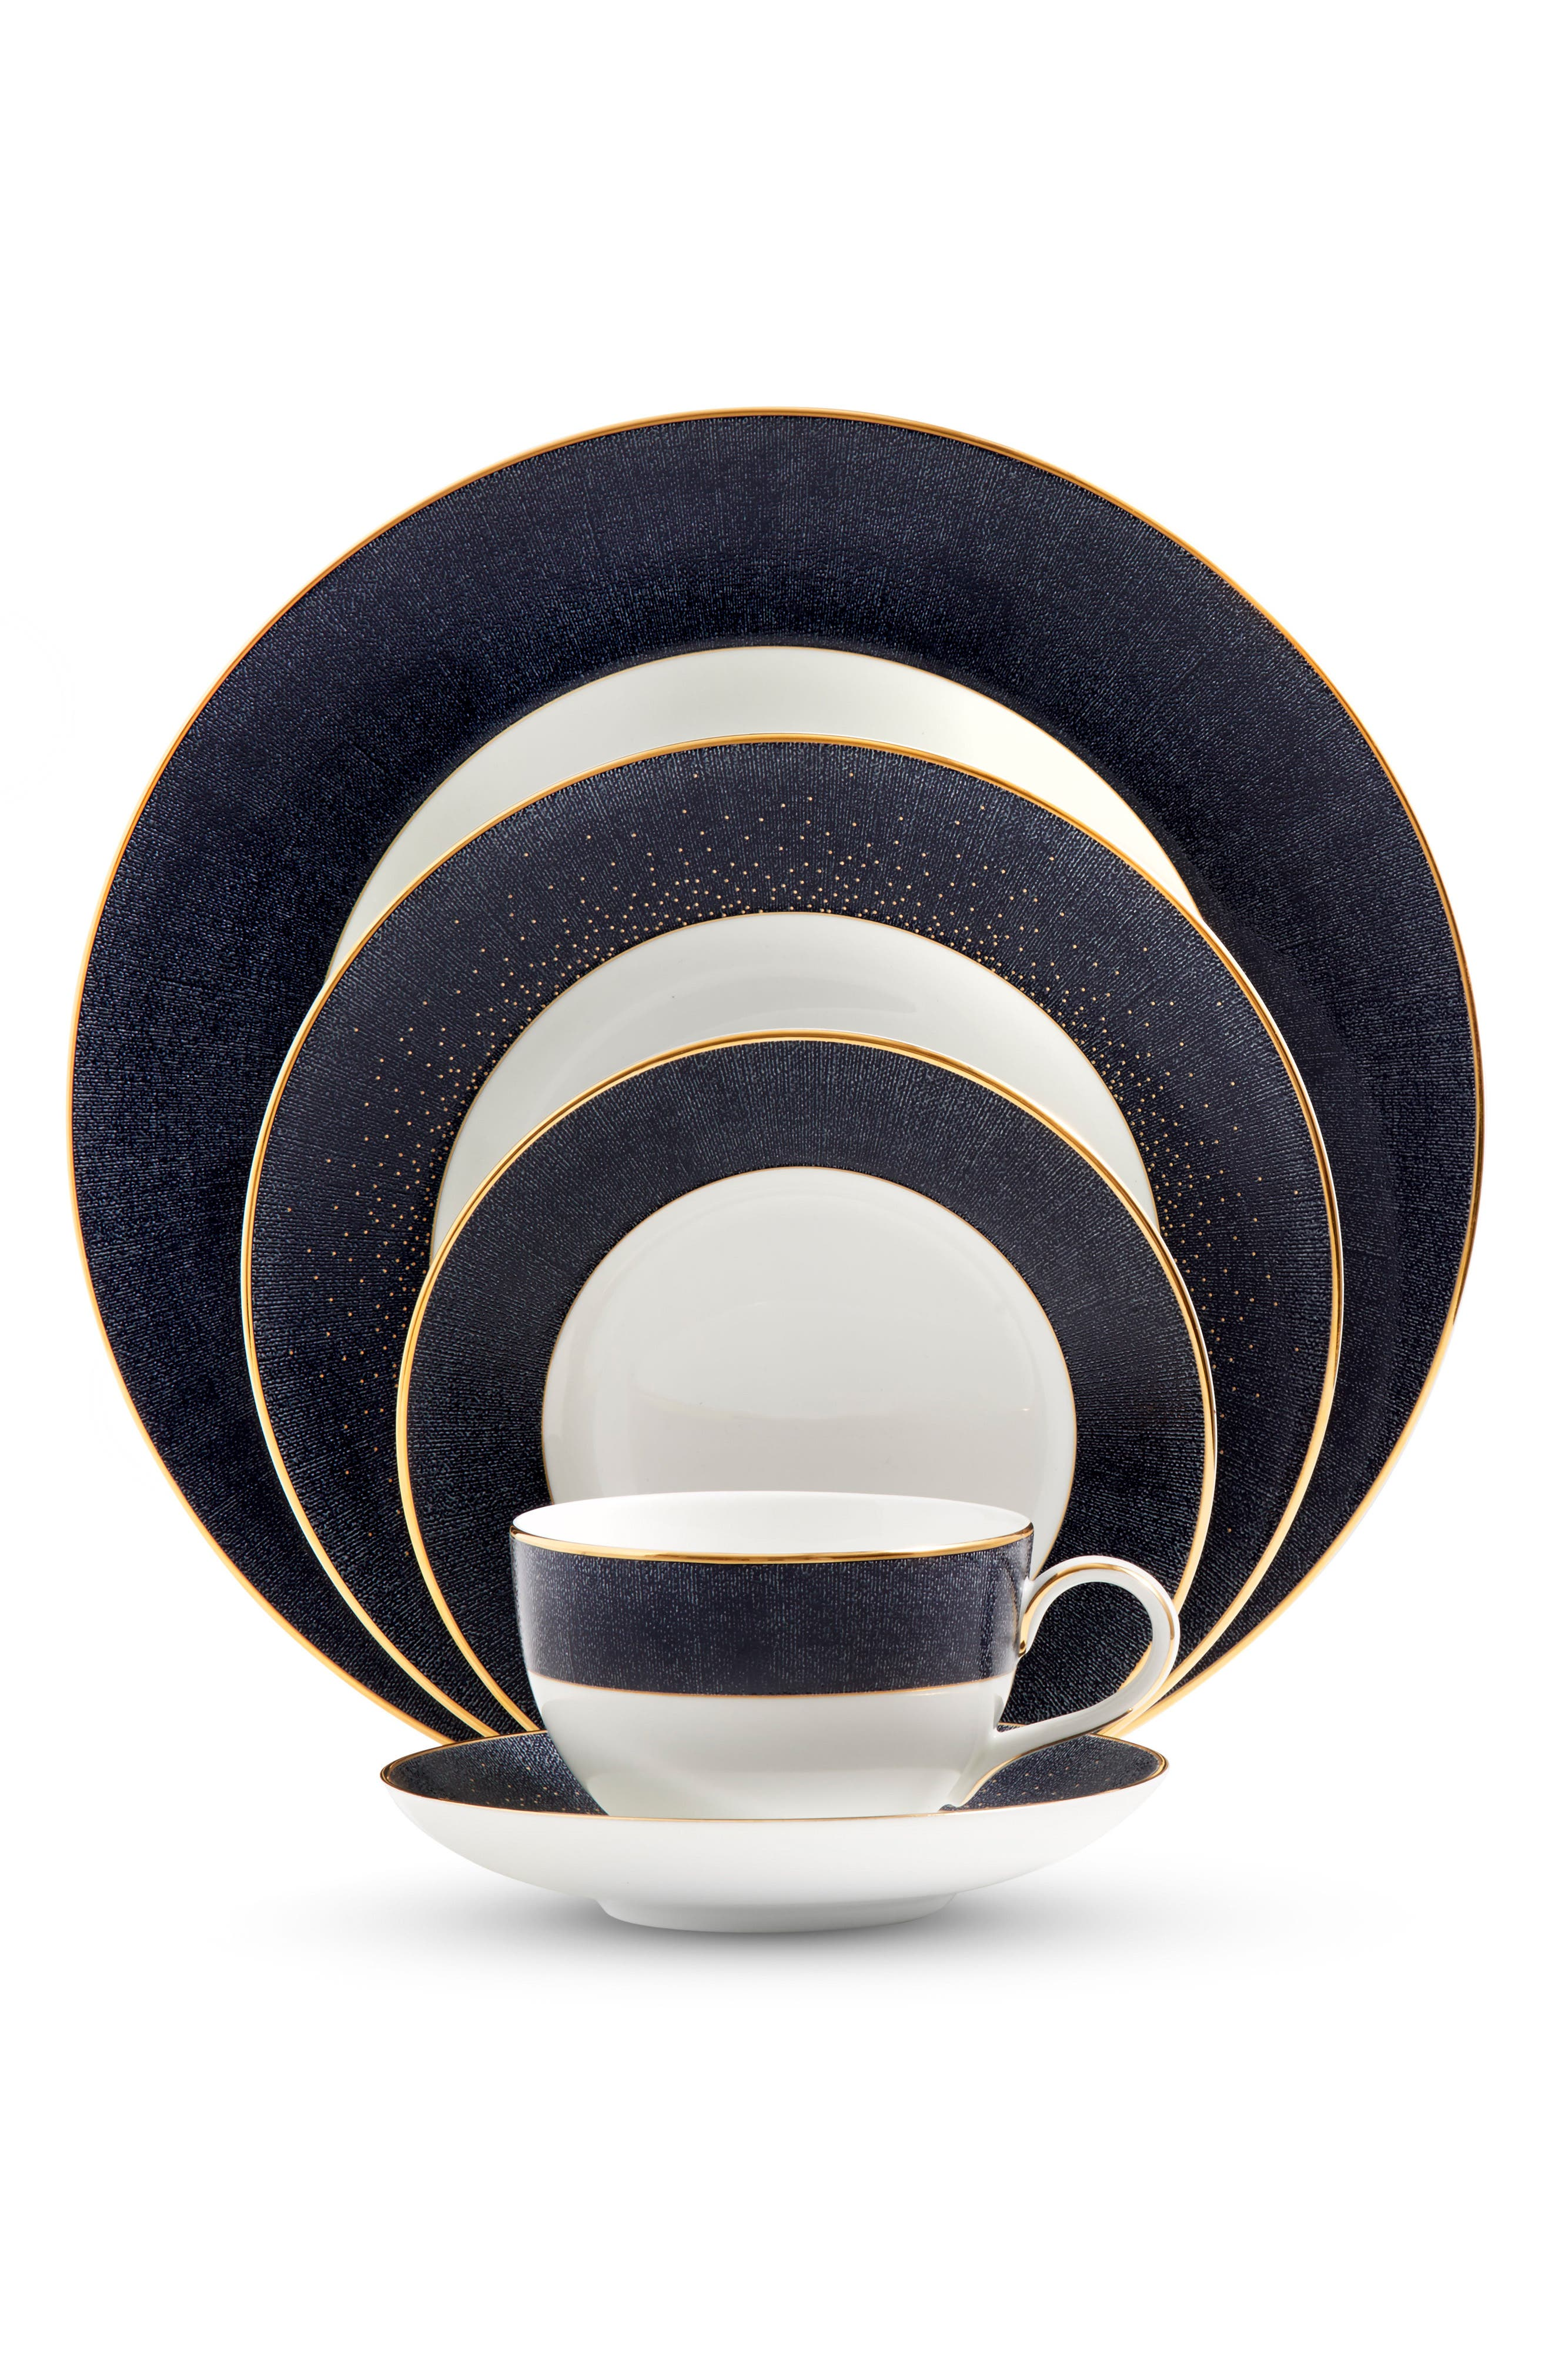 Monique Lhuillier Waterford Stardust Night 5-Piece Bone China Dinnerware Place Setting,                             Main thumbnail 1, color,                             100